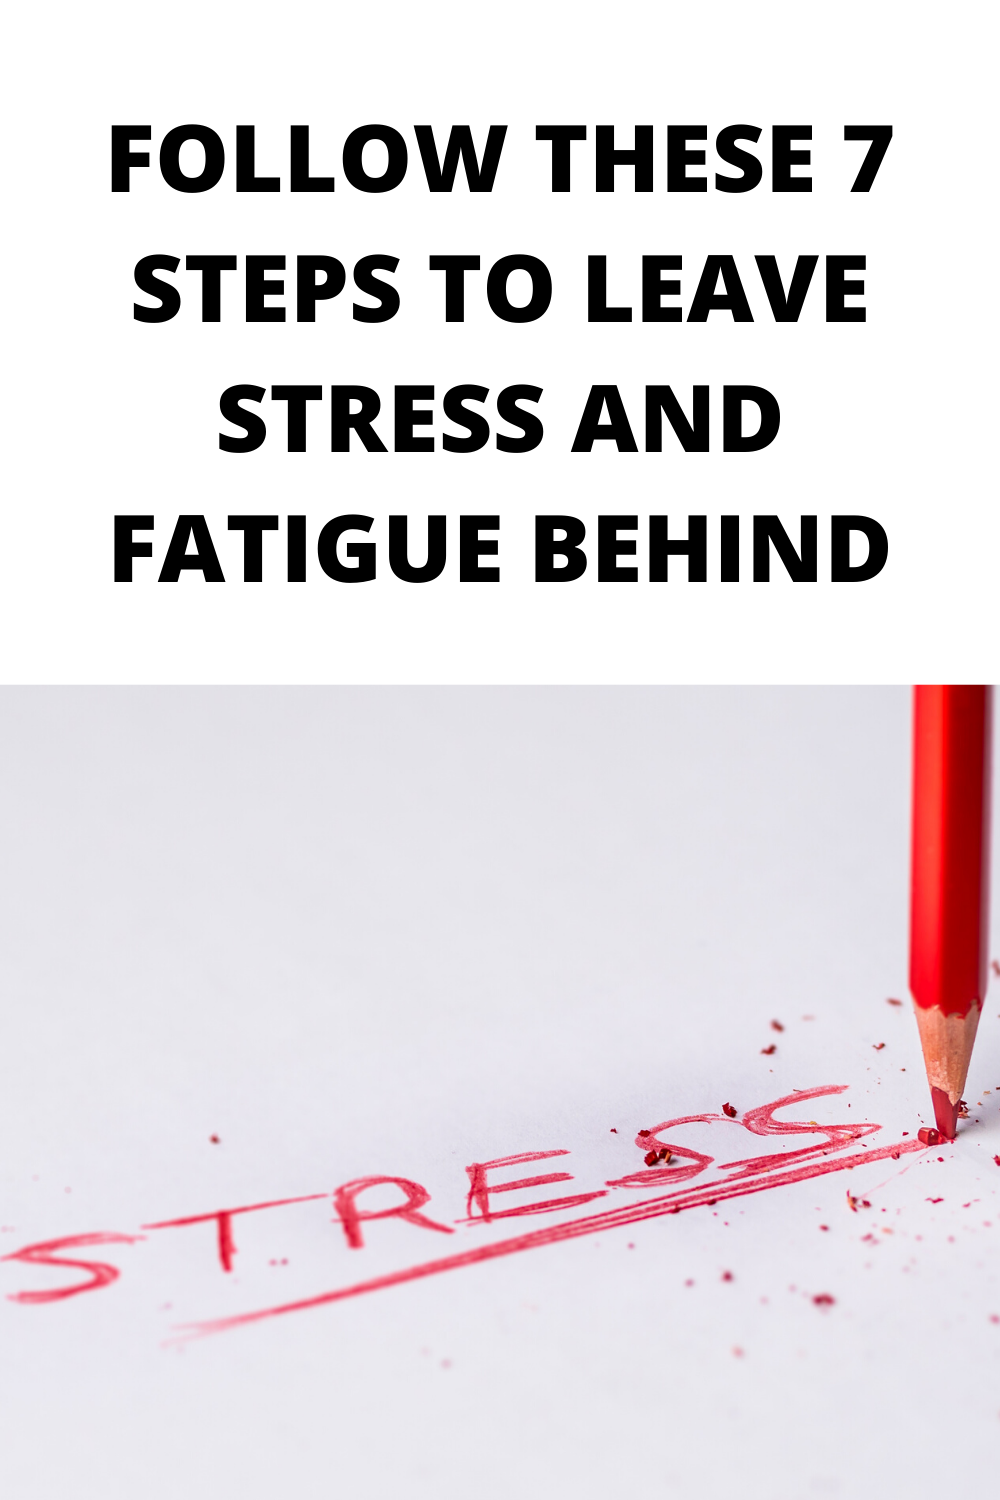 leave stress and fatigue behind